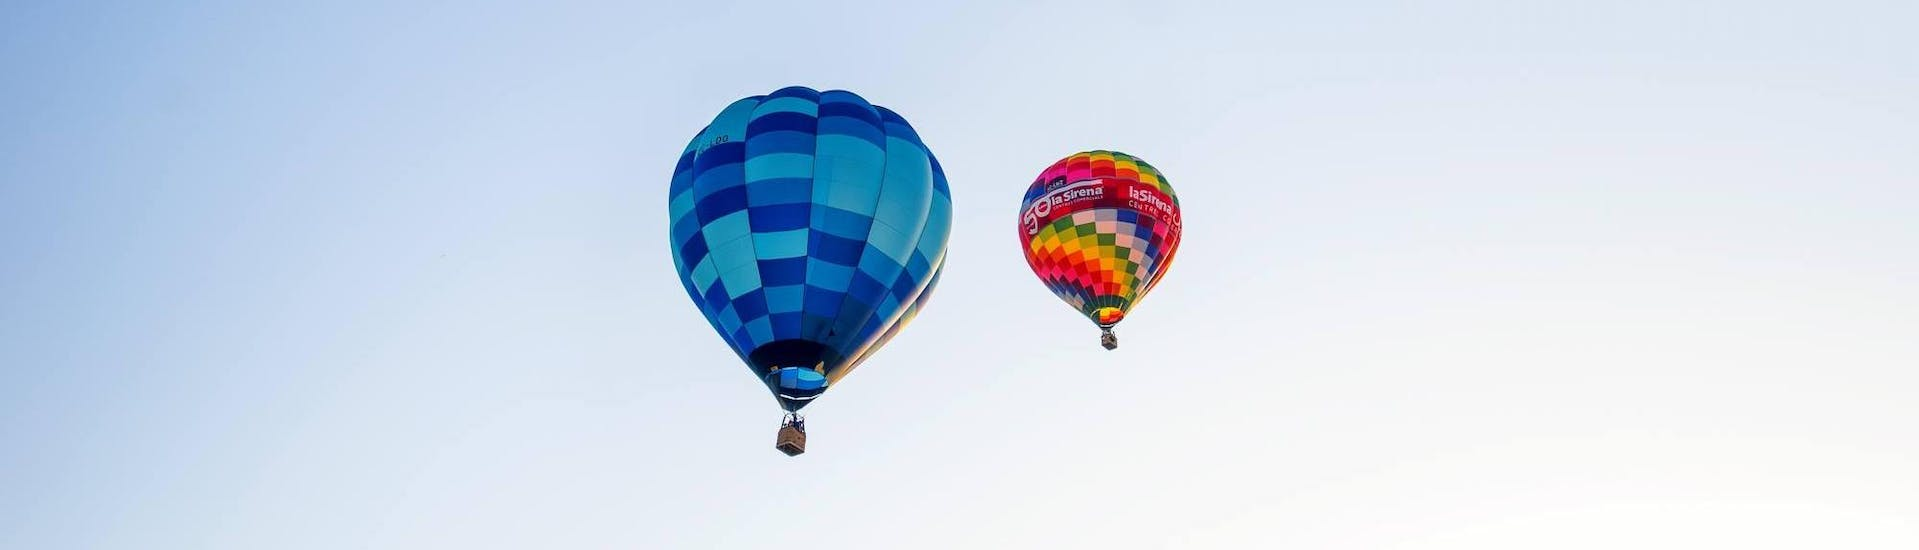 Two hot air balloons from Ibiza en Globo float several metres in the sky.